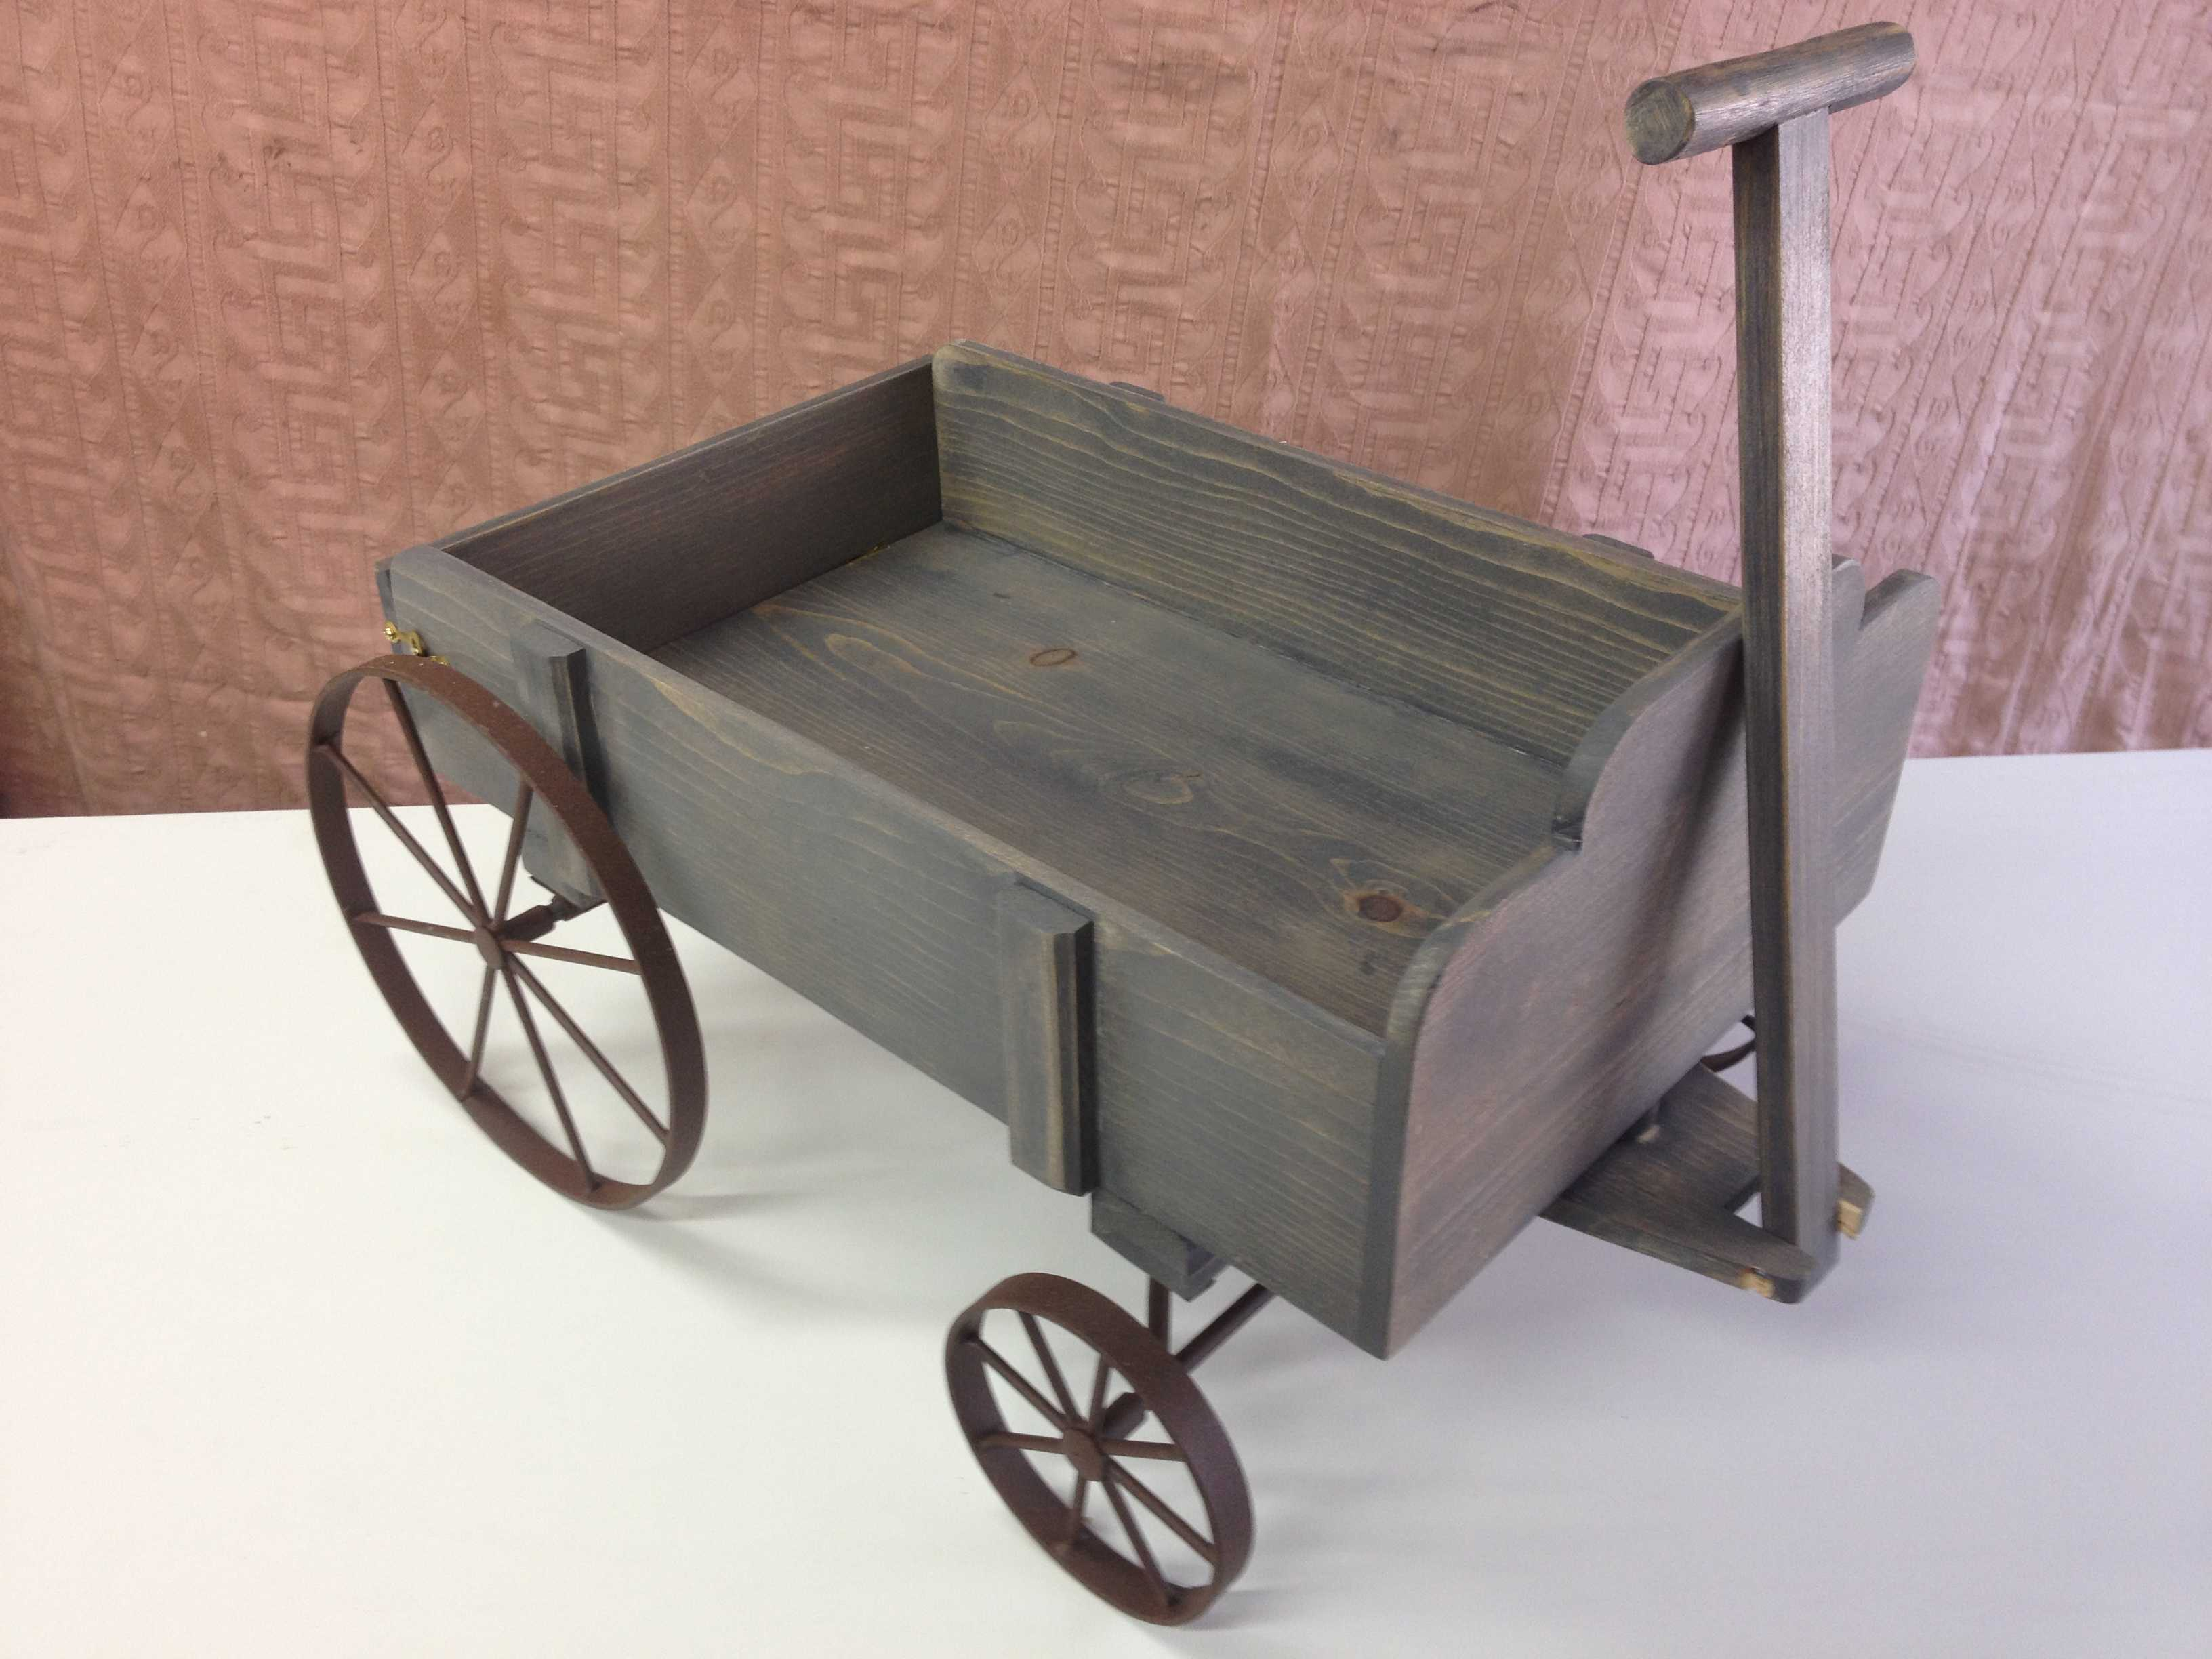 Cherry Wood Furniture wooden wagon original wagon in foreground with reproductions wooden ...